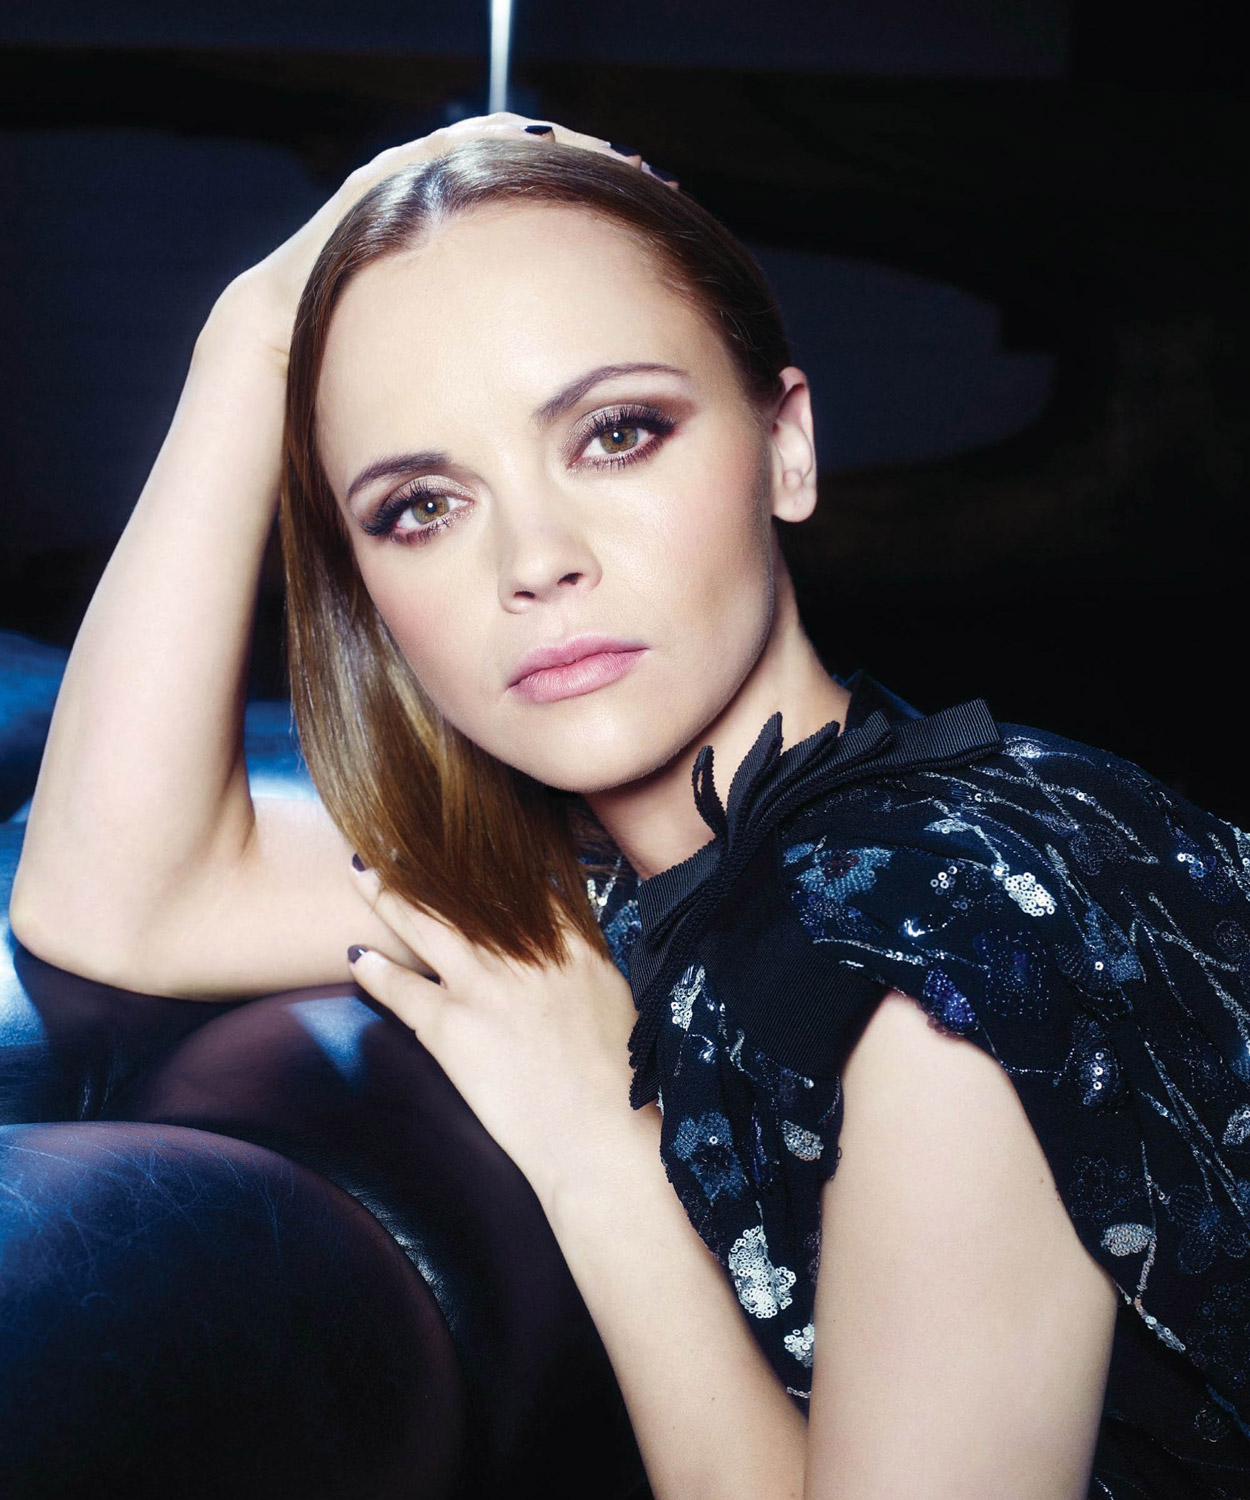 Beauty Christina Ricci Hairstyle on Angeleno Magazine September 2011